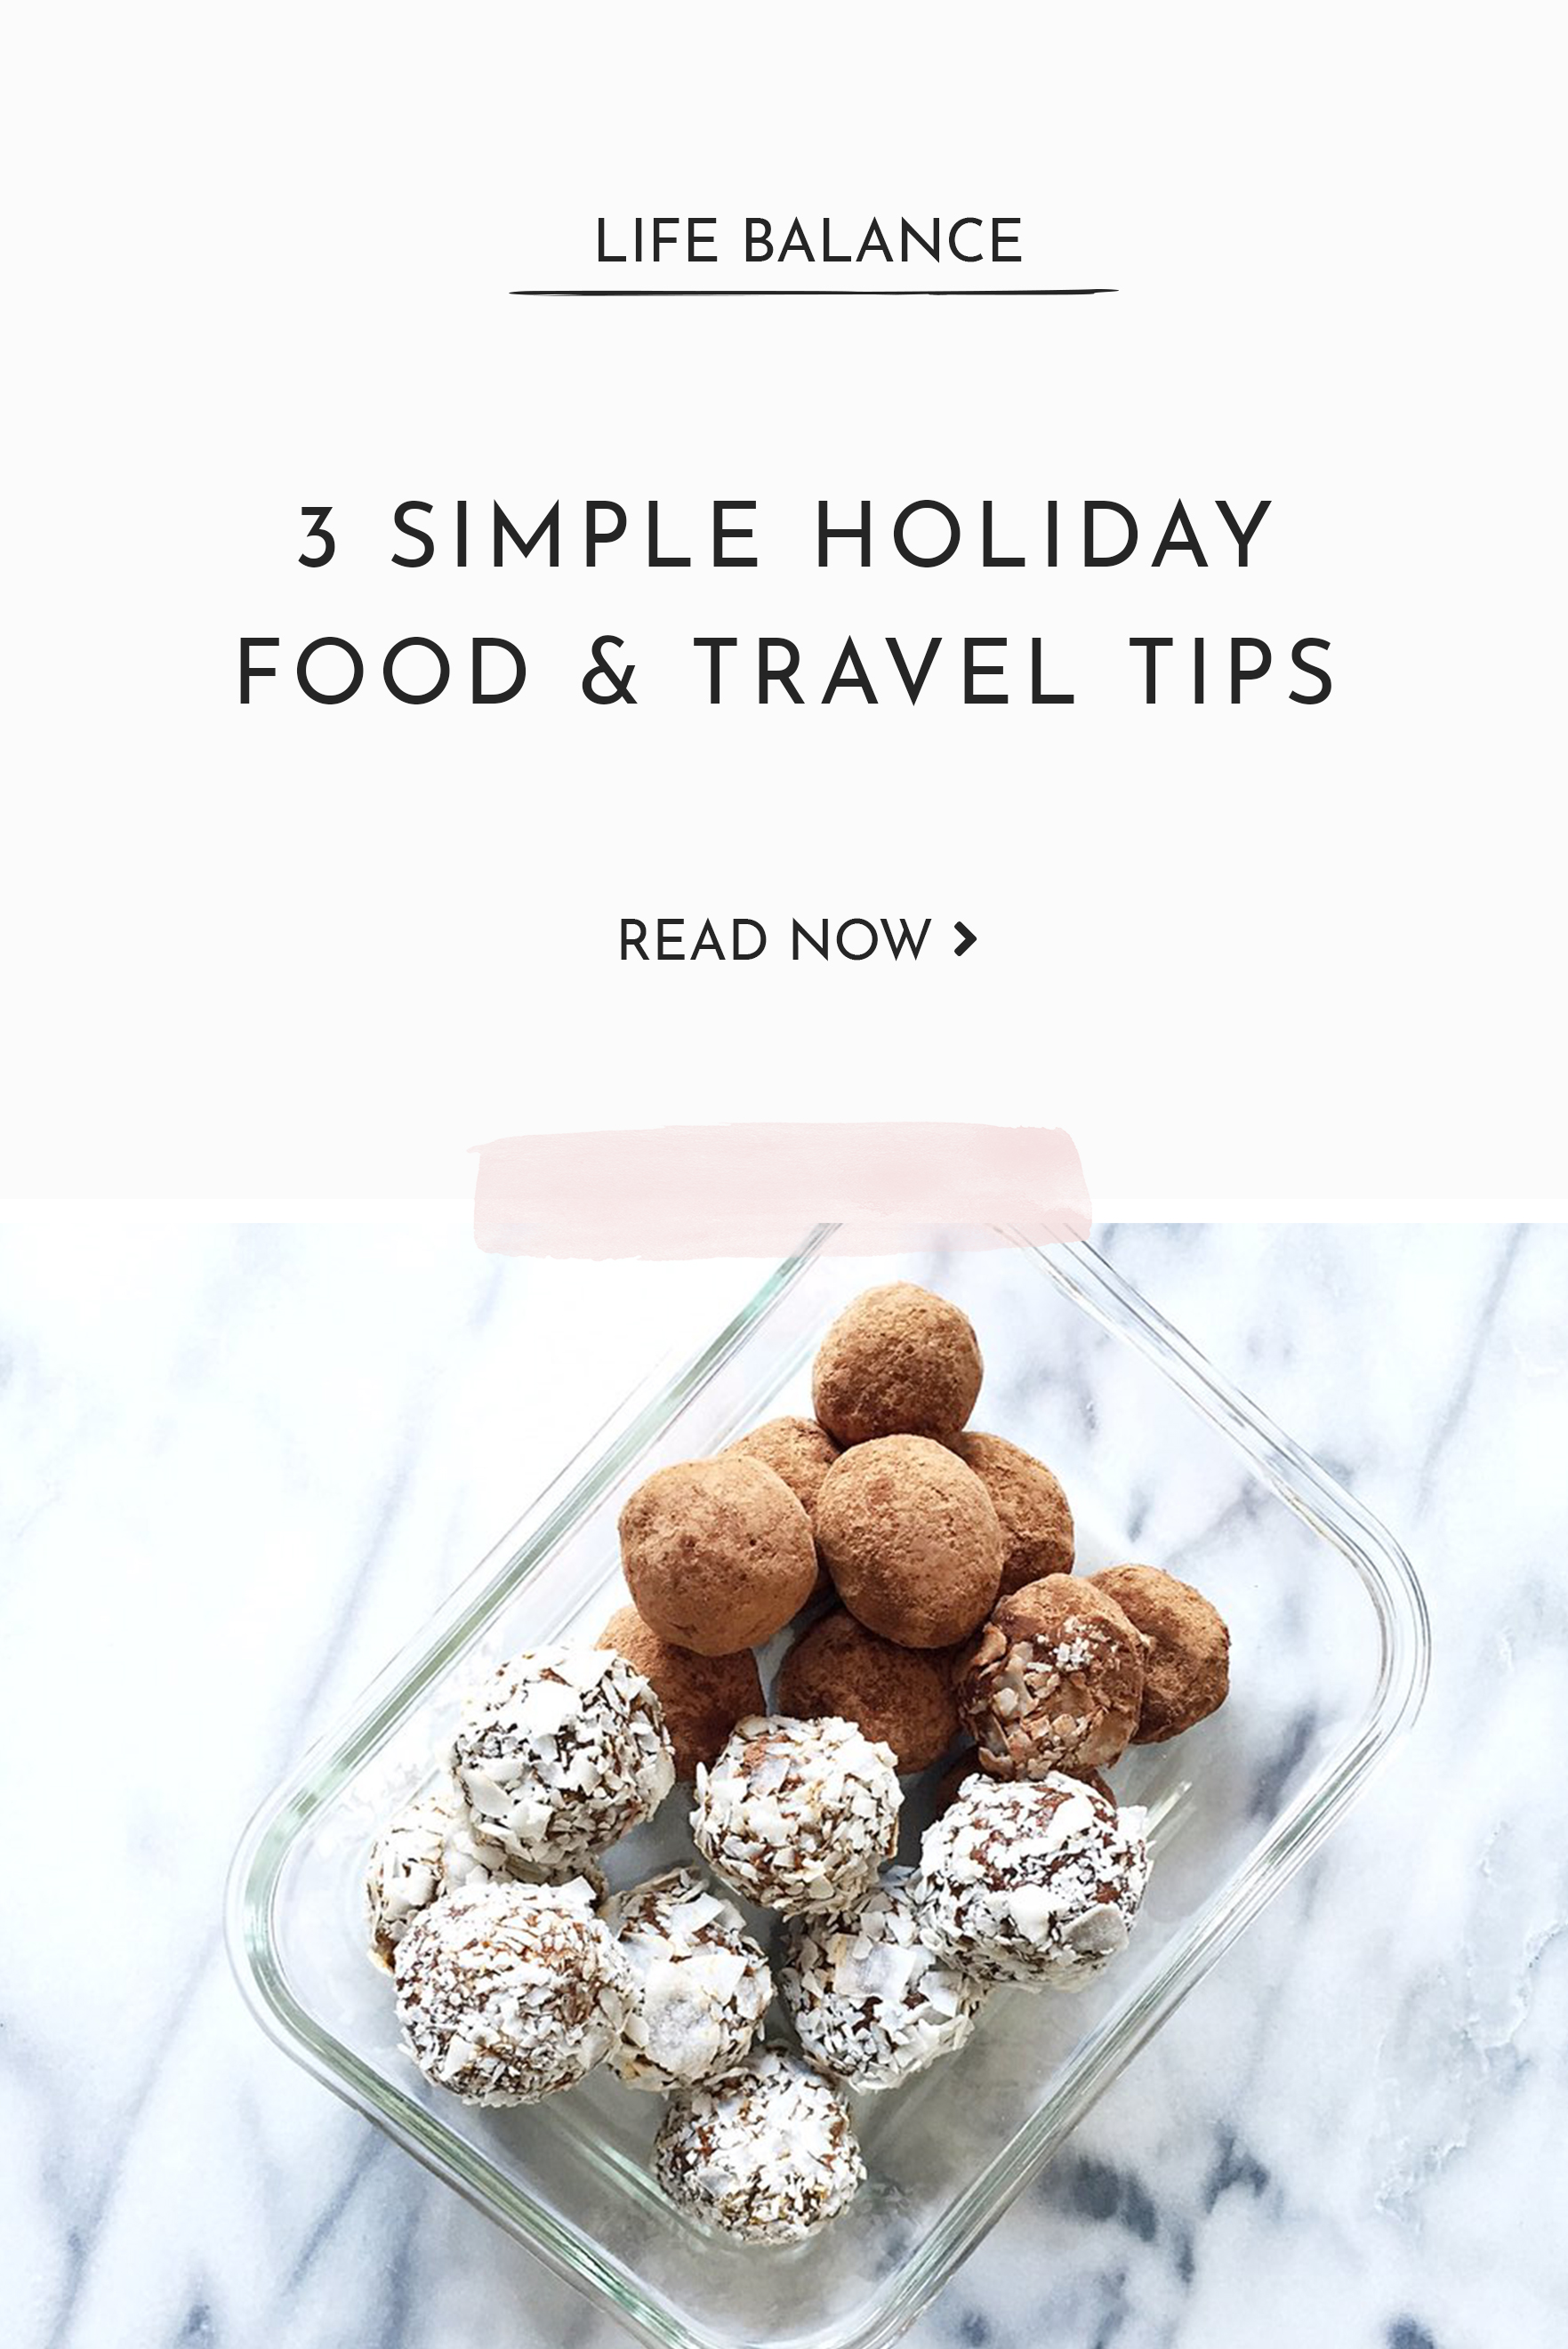 3 Simple tips for food and travel during the holidays.